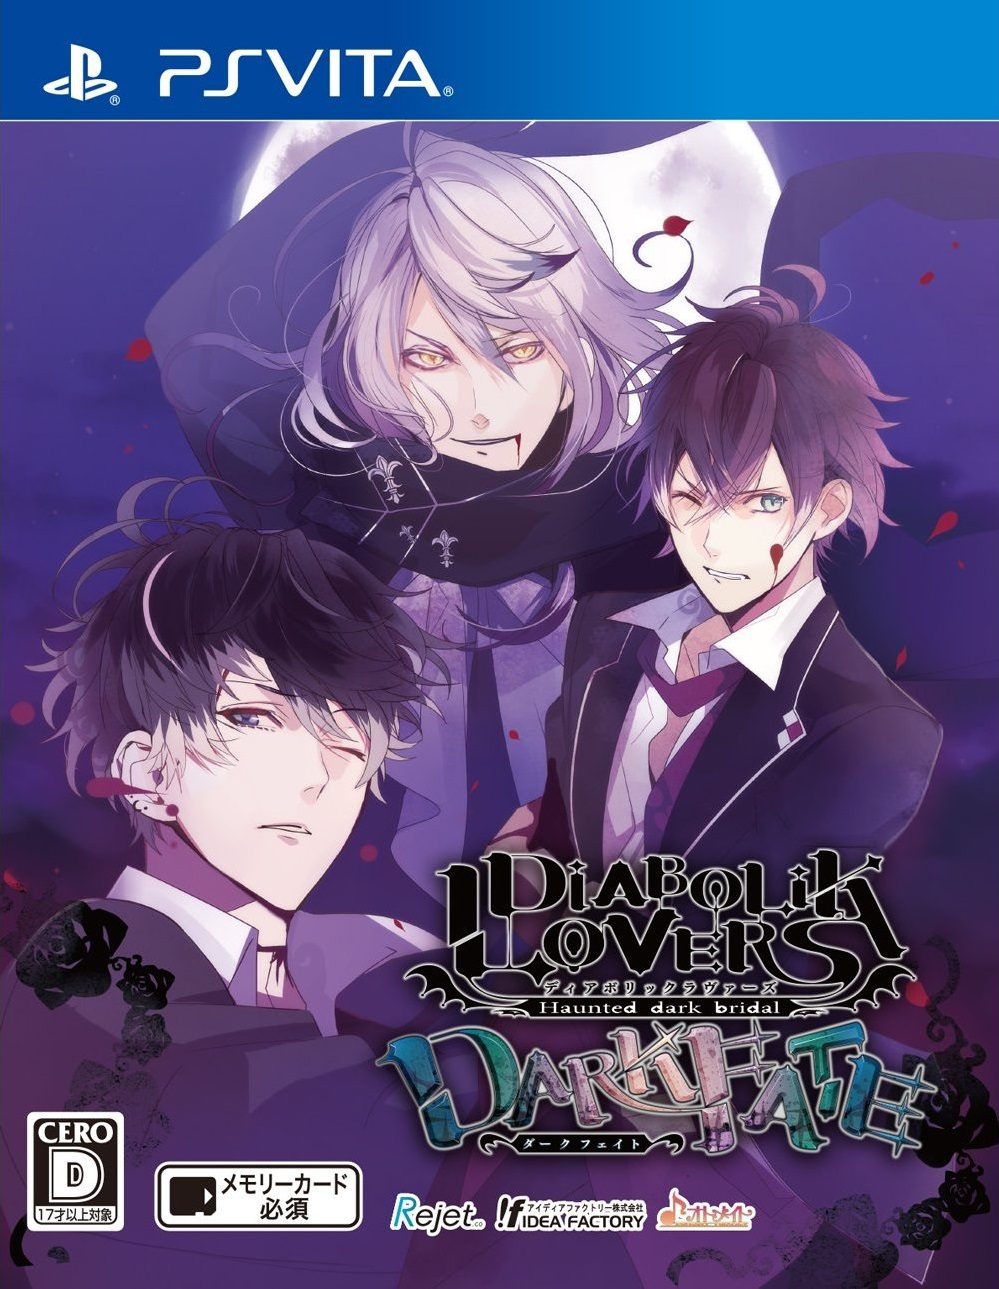 Diabolik Lovers- Dark Fate